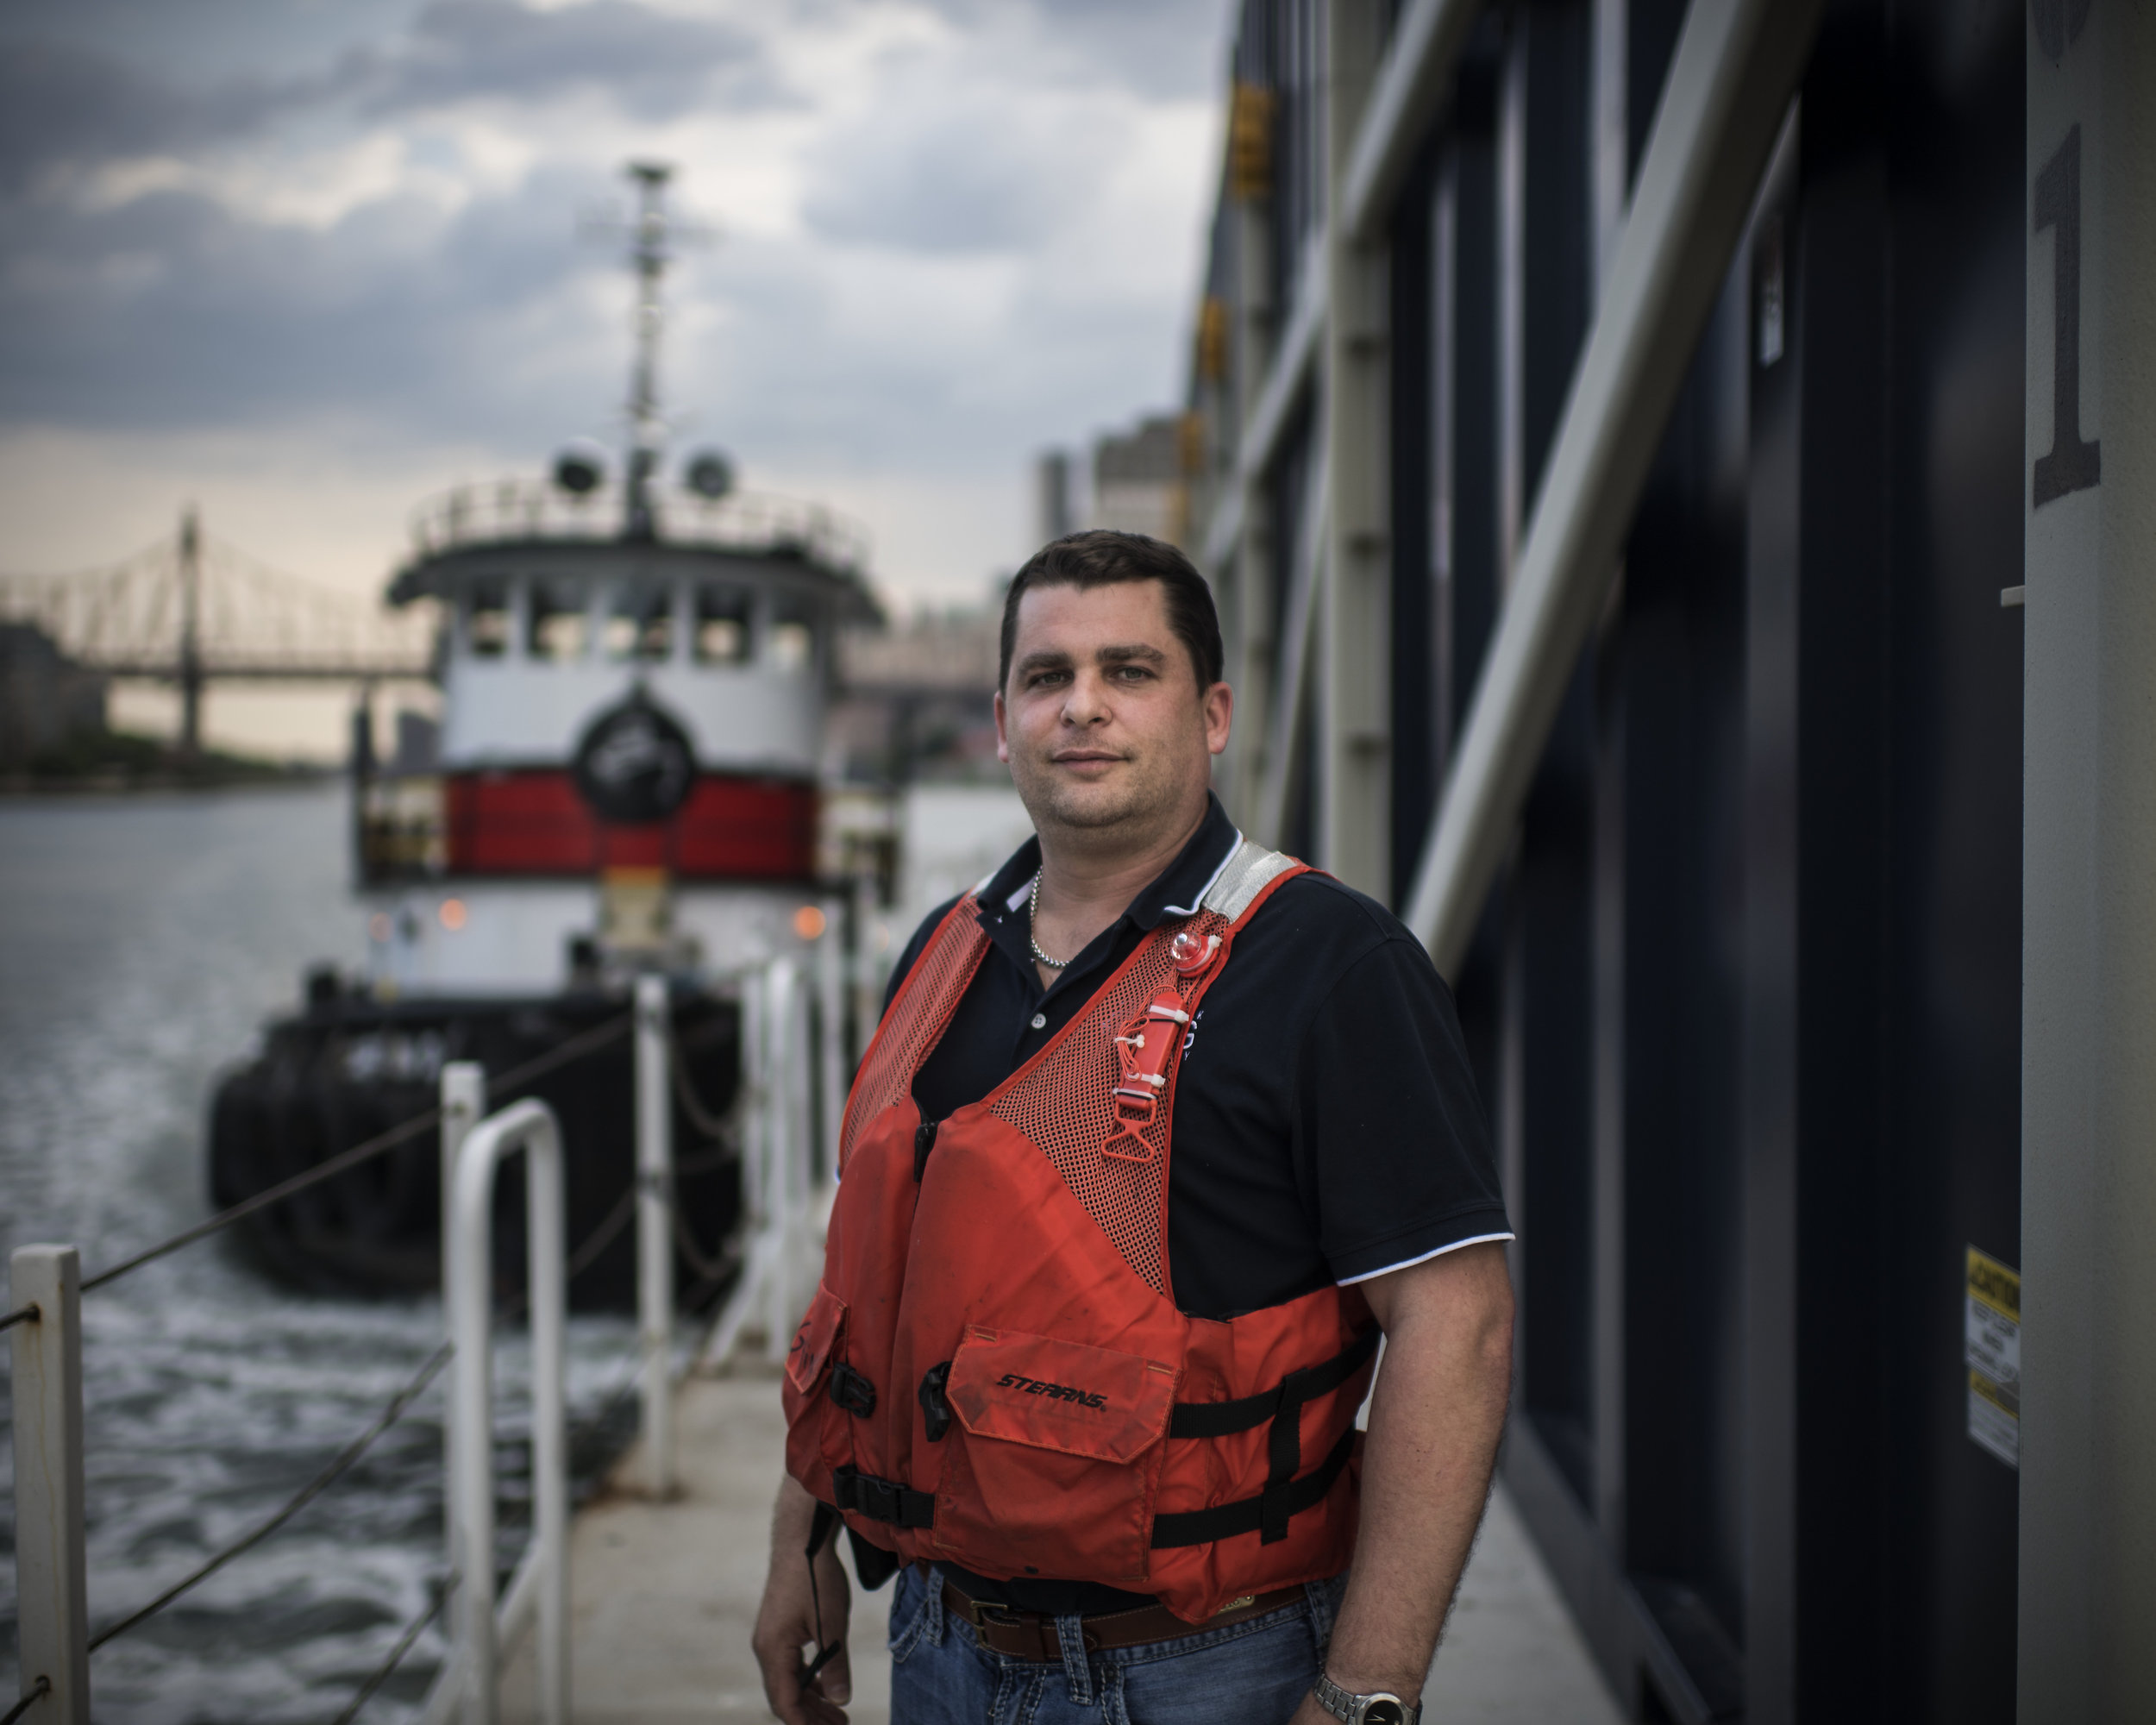 USA, New York, New York City, 23 May 2016